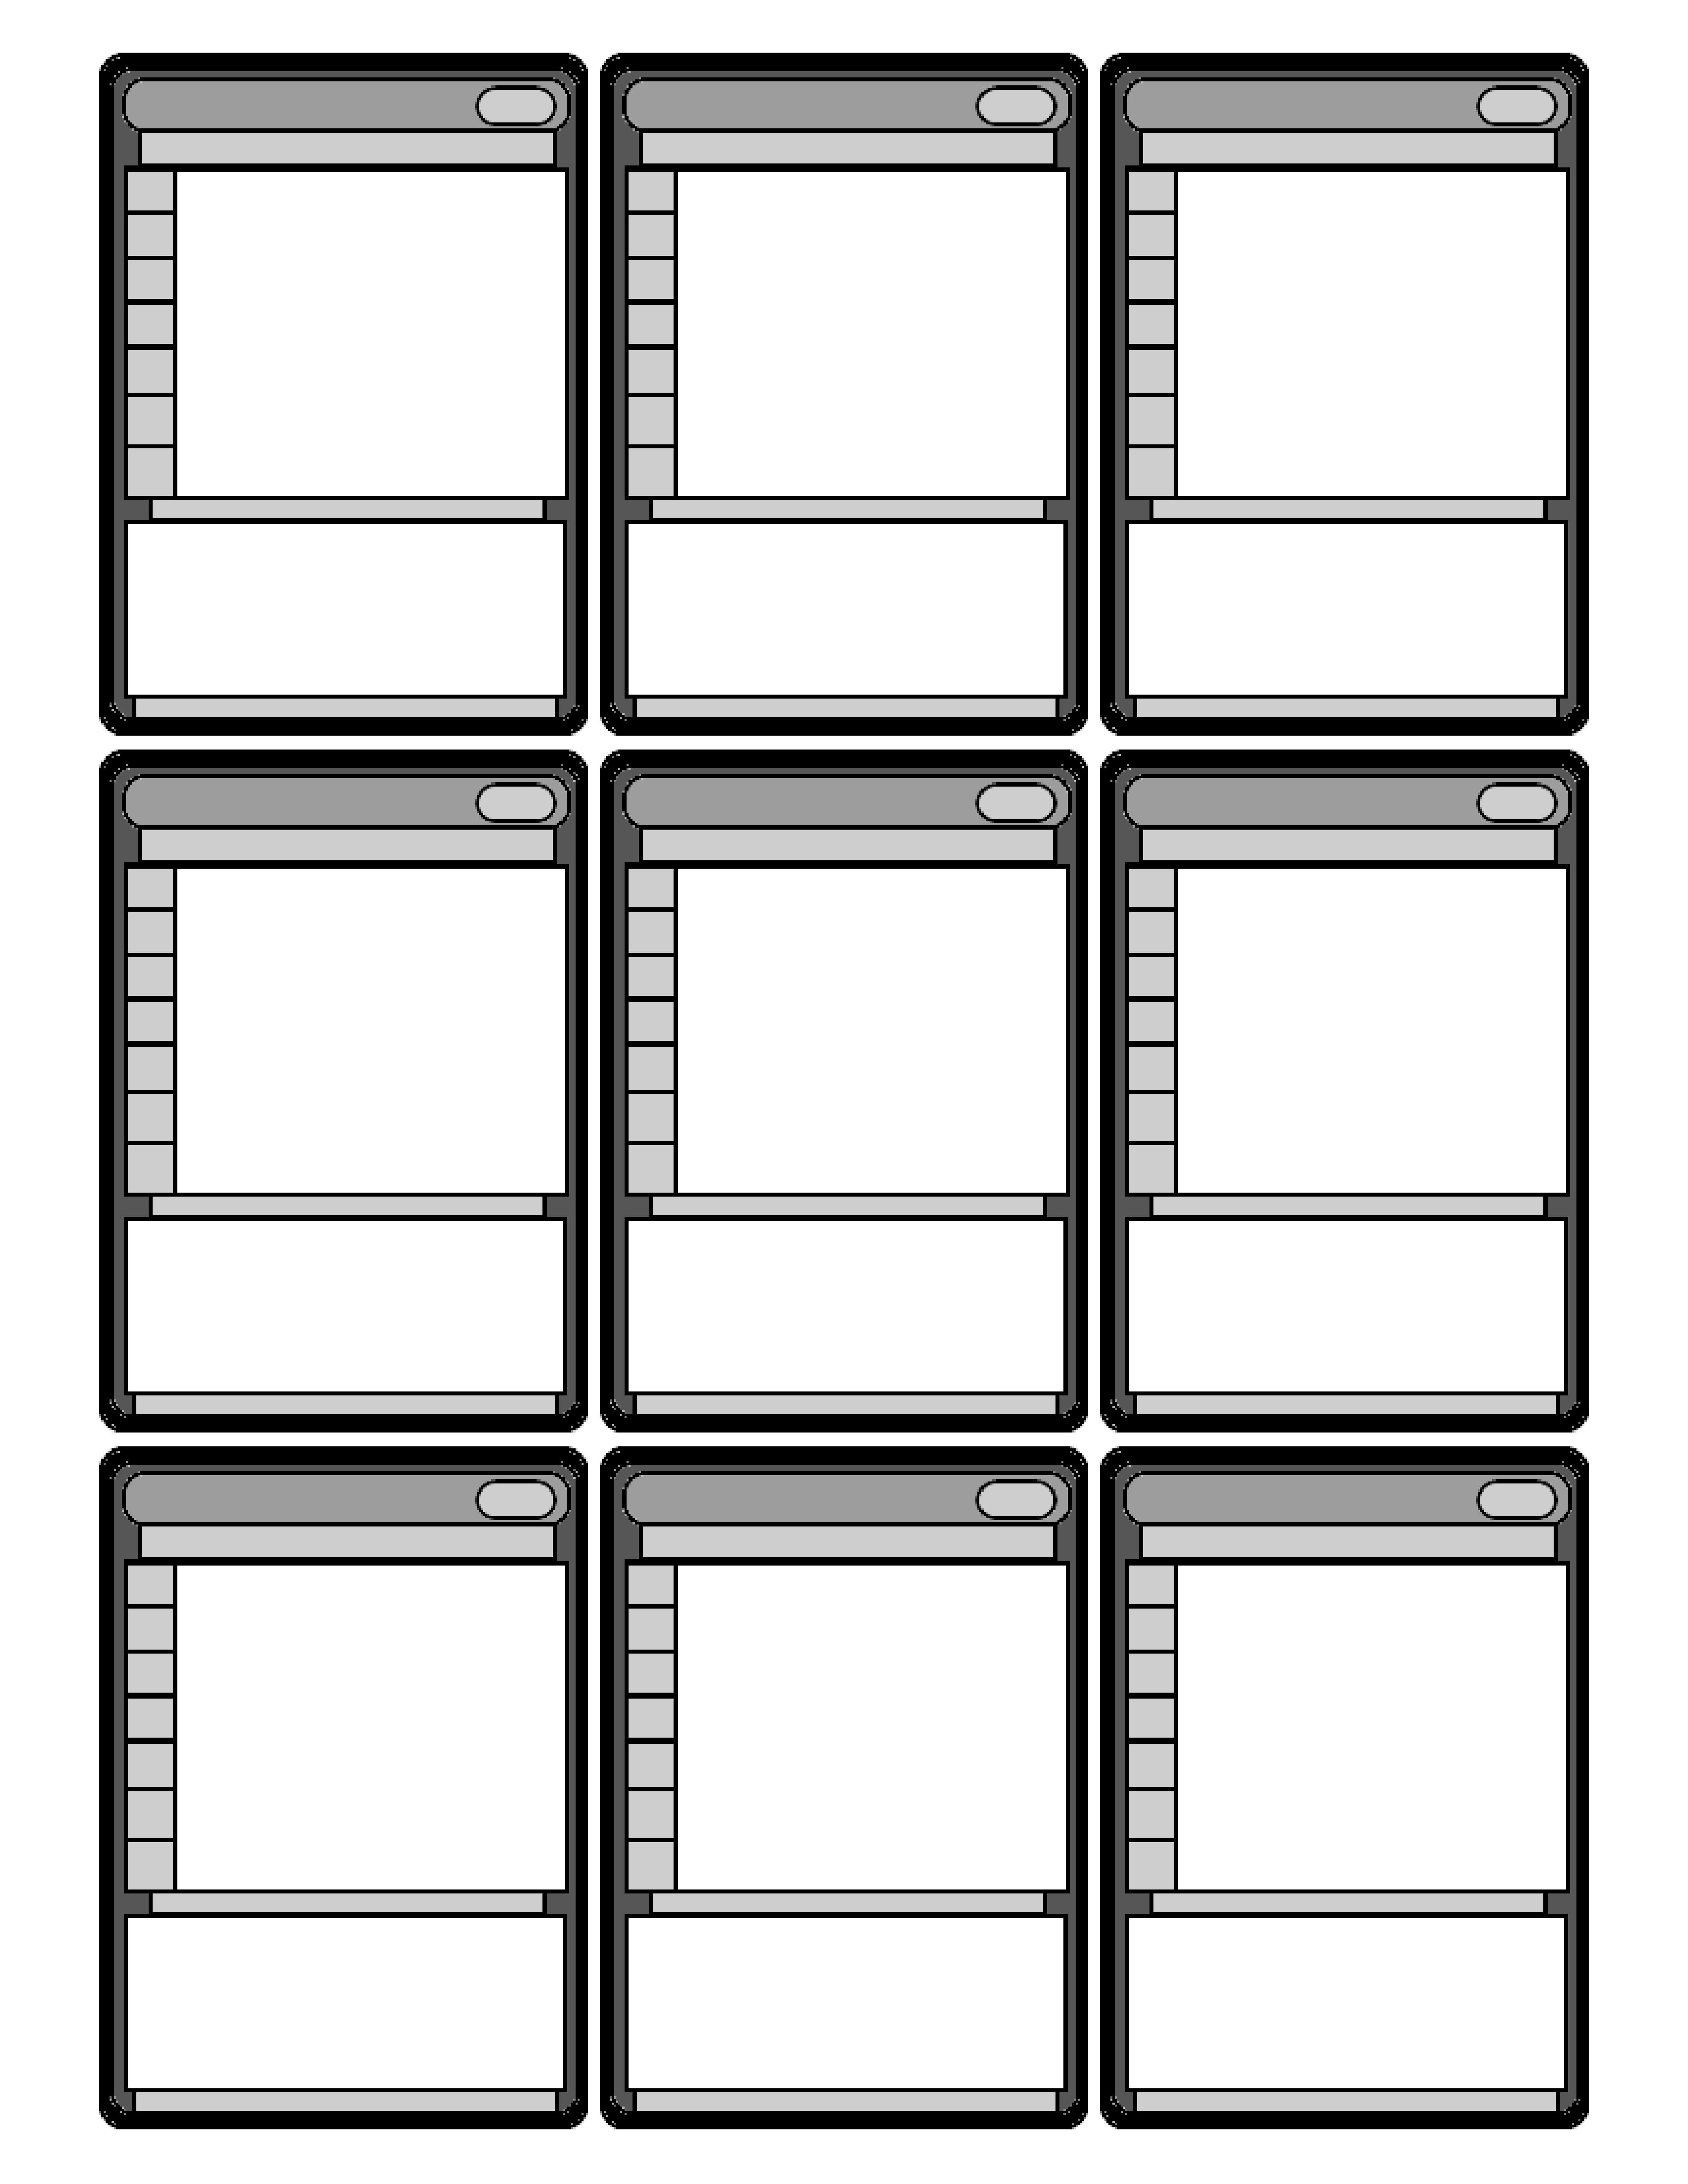 Blackdecx Printing Services Ccg Or Tcg Style Template